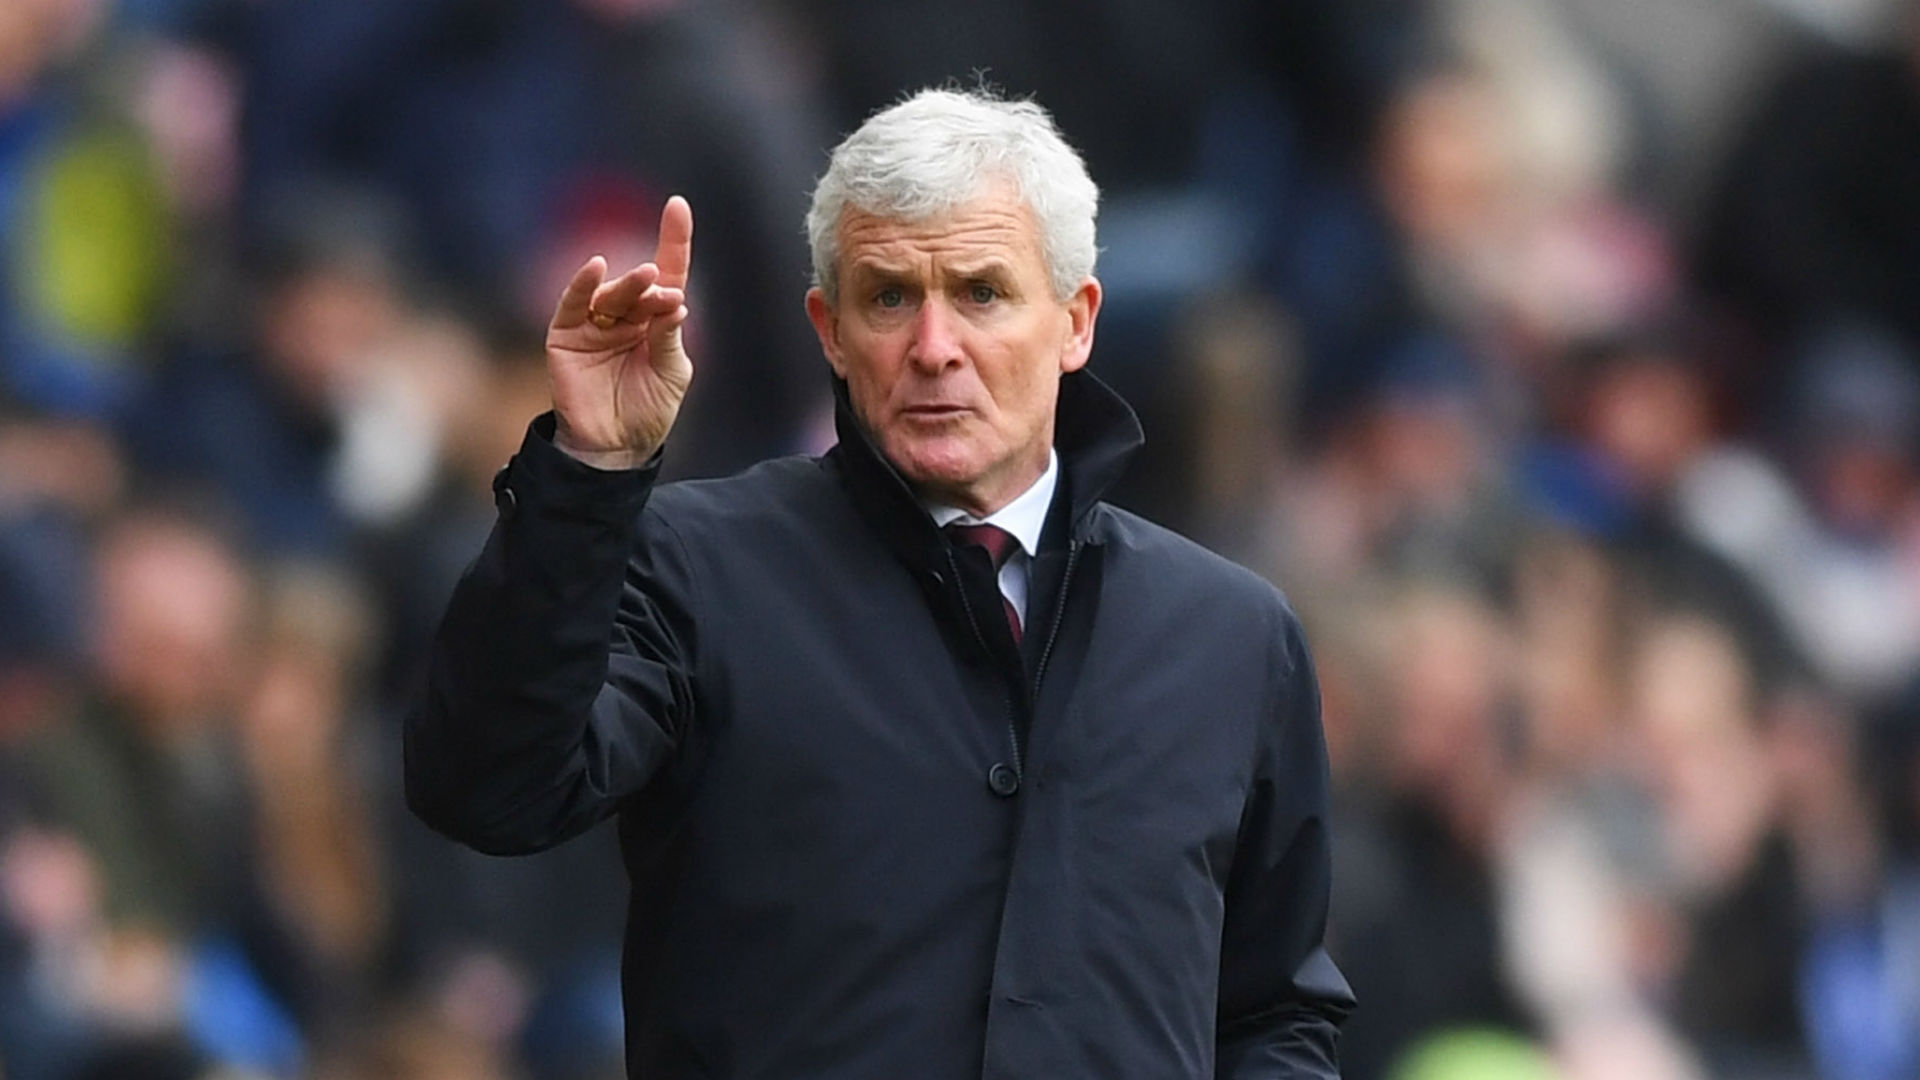 Southampton's capitulation at the hands of West Ham on Saturday left Mark Hughes frustrated and hunting for a way to solve their problems.